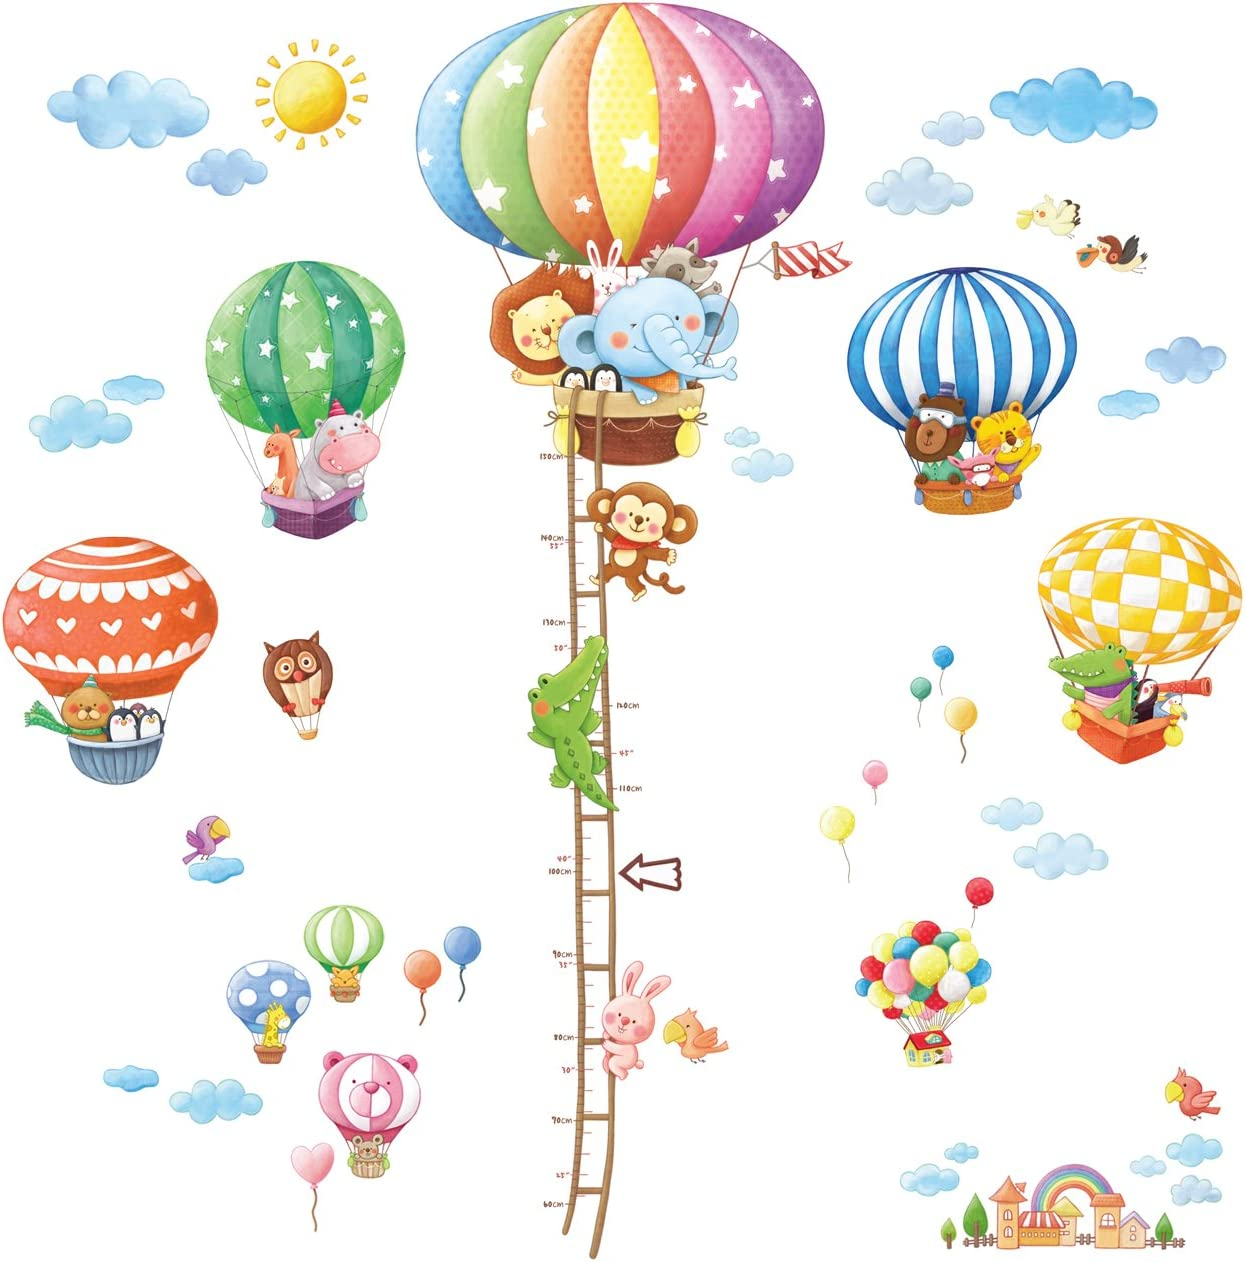 DECOWALL DA-1606N1406B Animal Hot Air Balloons Height Chart Kids Wall Stickers Wall Decals Peel and Stick Removable Wall Stickers for Kids Nursery Bedroom Living Room décor